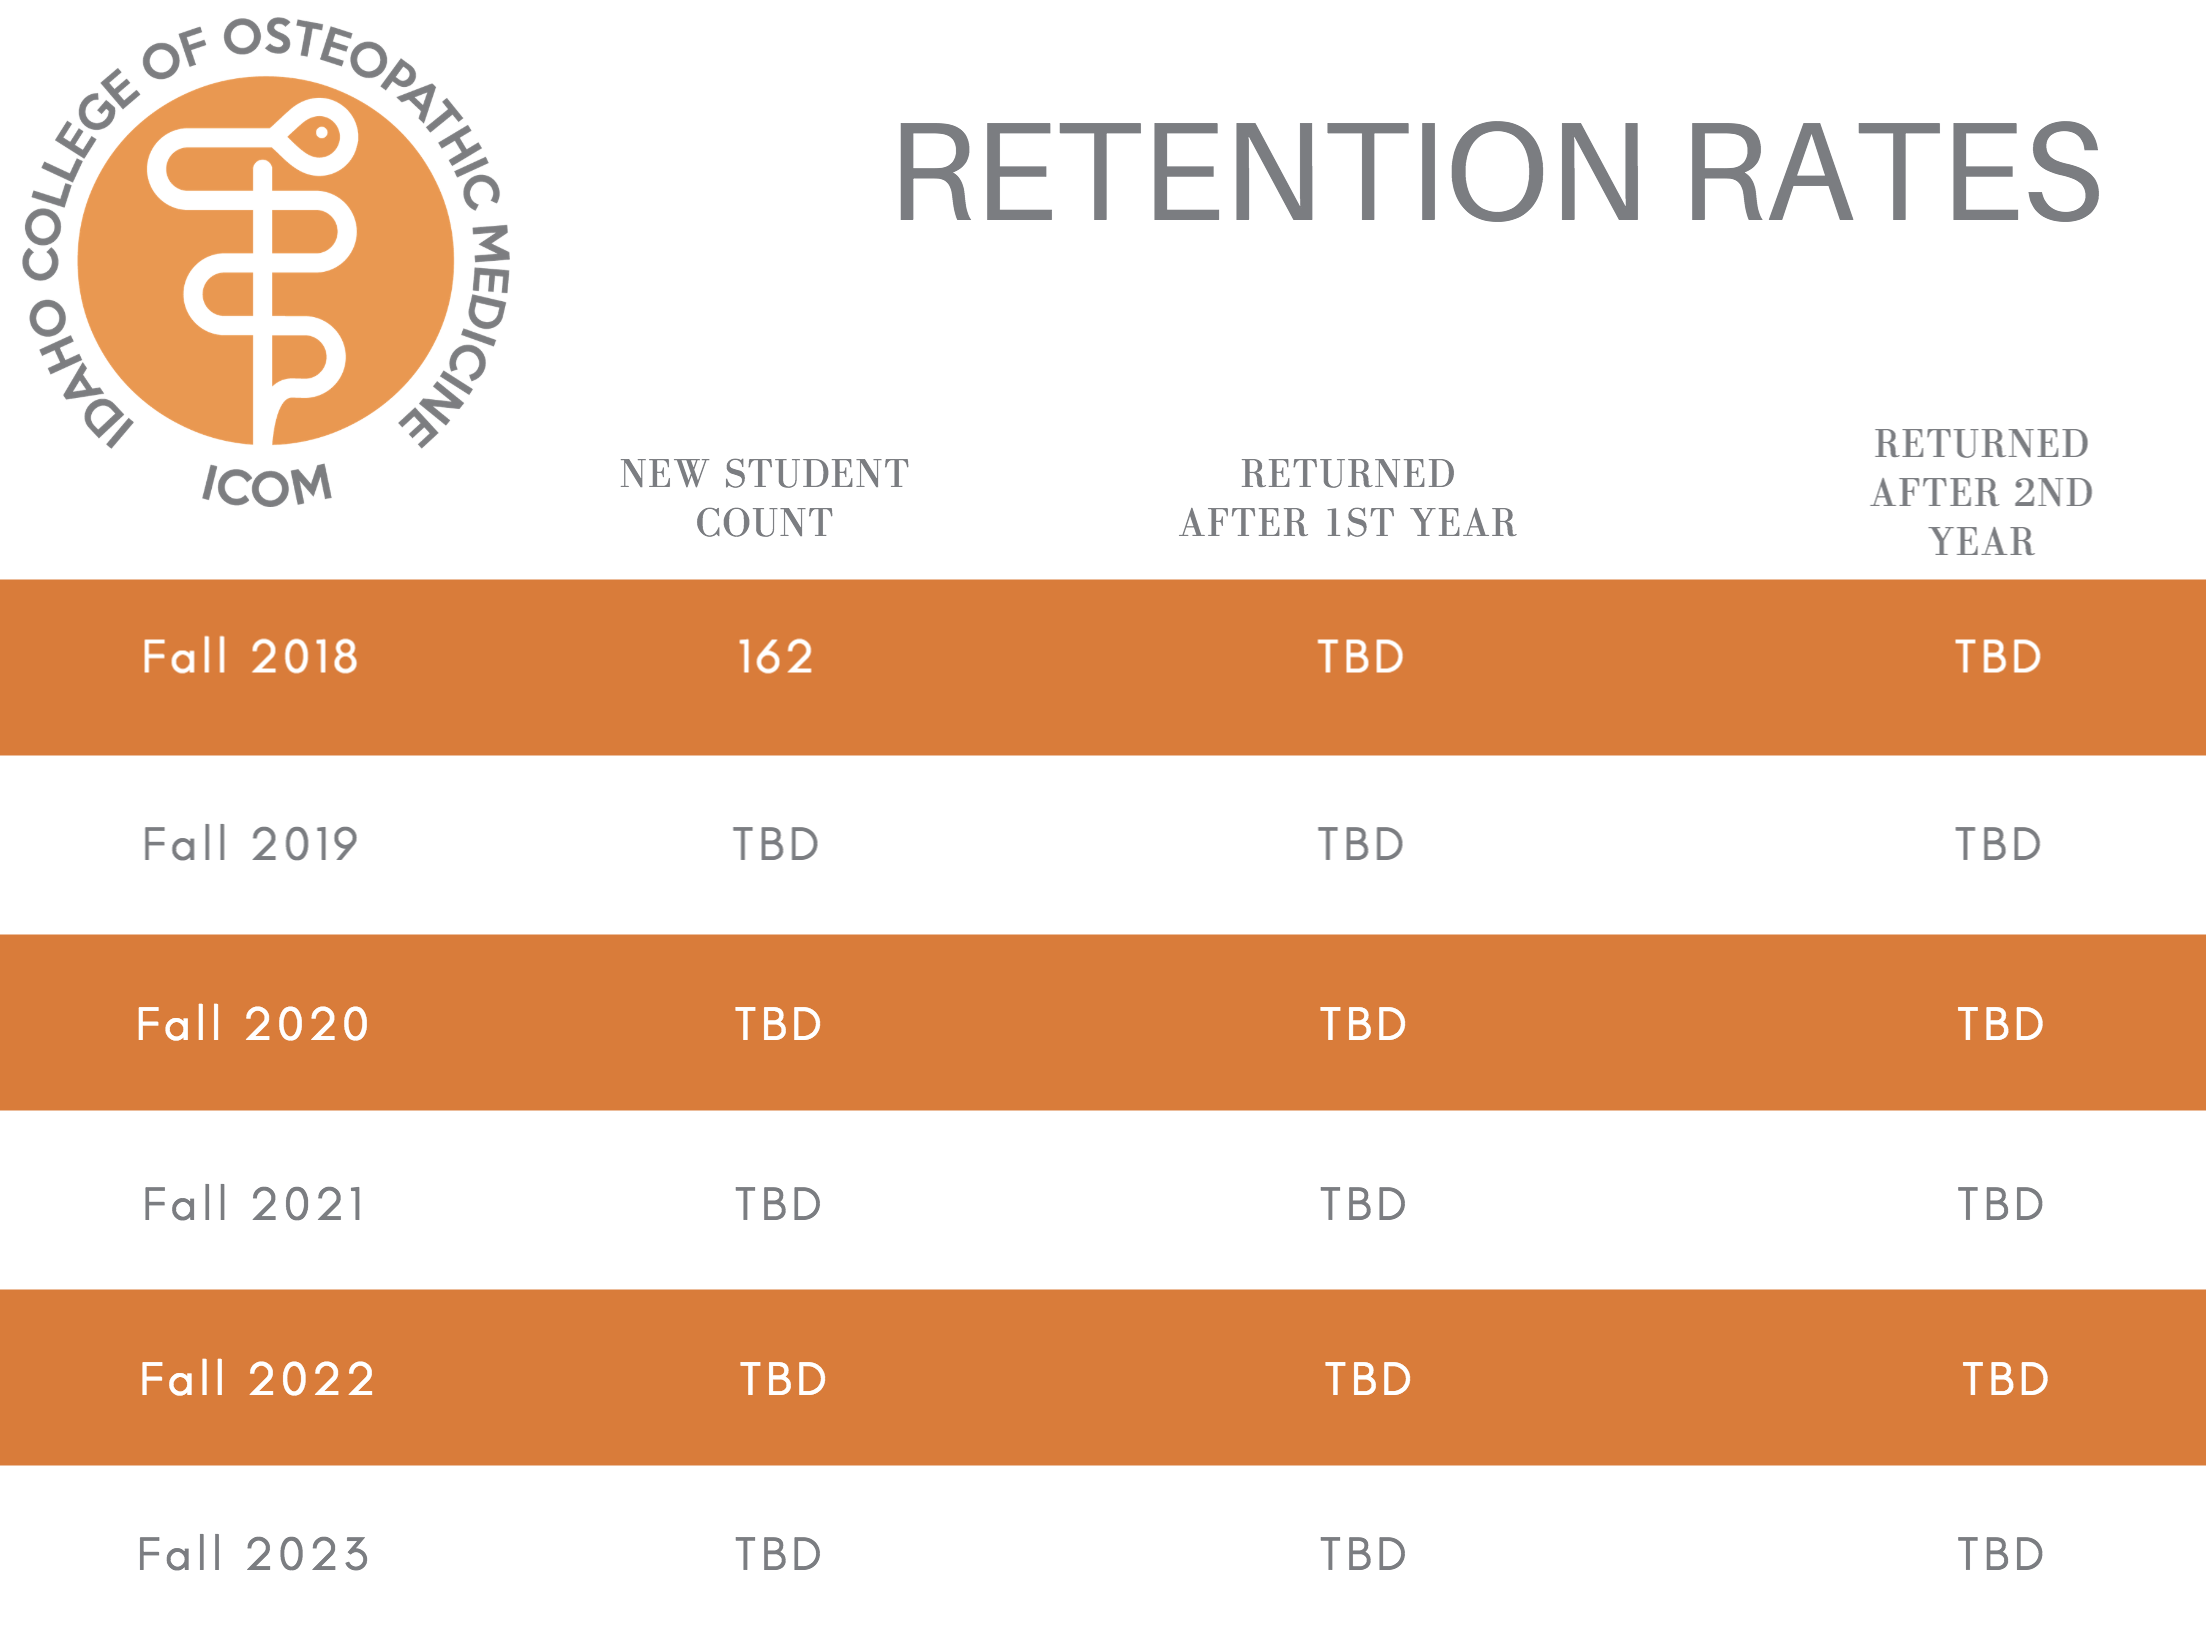 """Retention rate""  is defined as the percentage of a school's first-time, first-year students who continue at that school the next academic year. For example, a student who studies full-time in the fall semester and continues in the program through the following fall semester is counted in this rate."